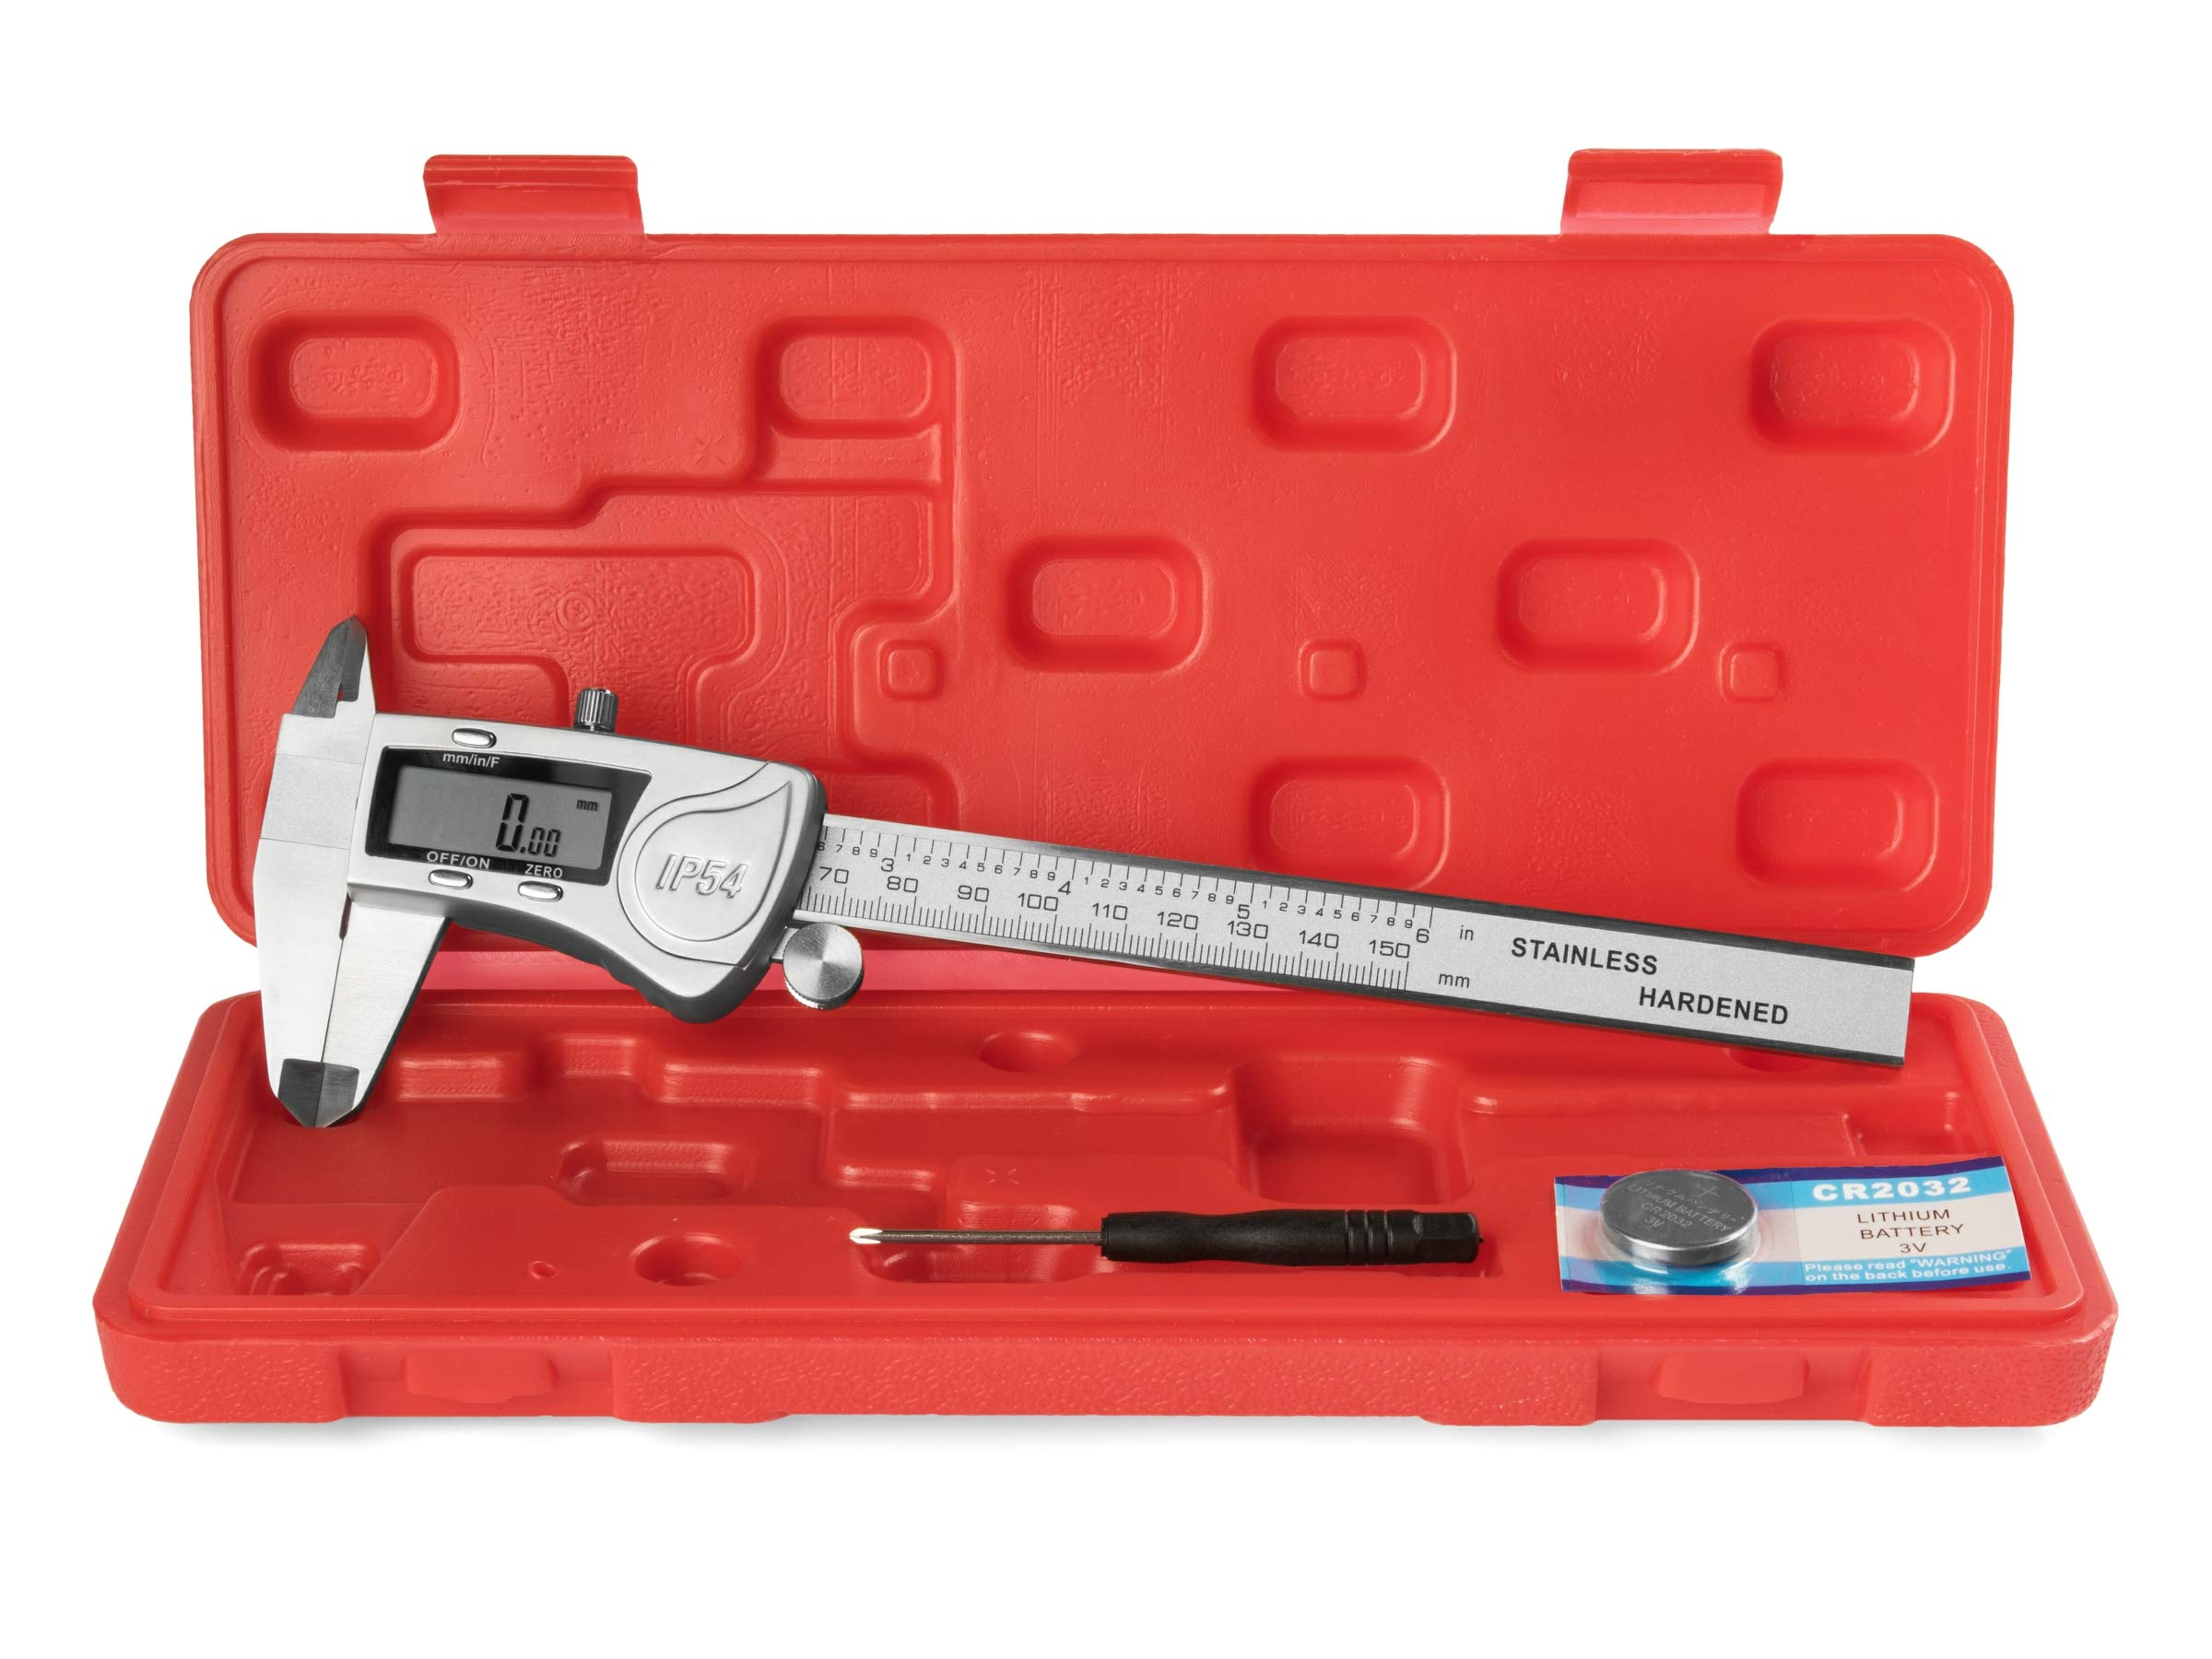 EAGems Digital Caliper, Rugged Stainless Steel IP54 Water Resistant Electronic Measuring Tool; Get Precision Fractional Measurements in SAE/Metric, 6 inch/150mm with these Large LCD Vernier Calipers